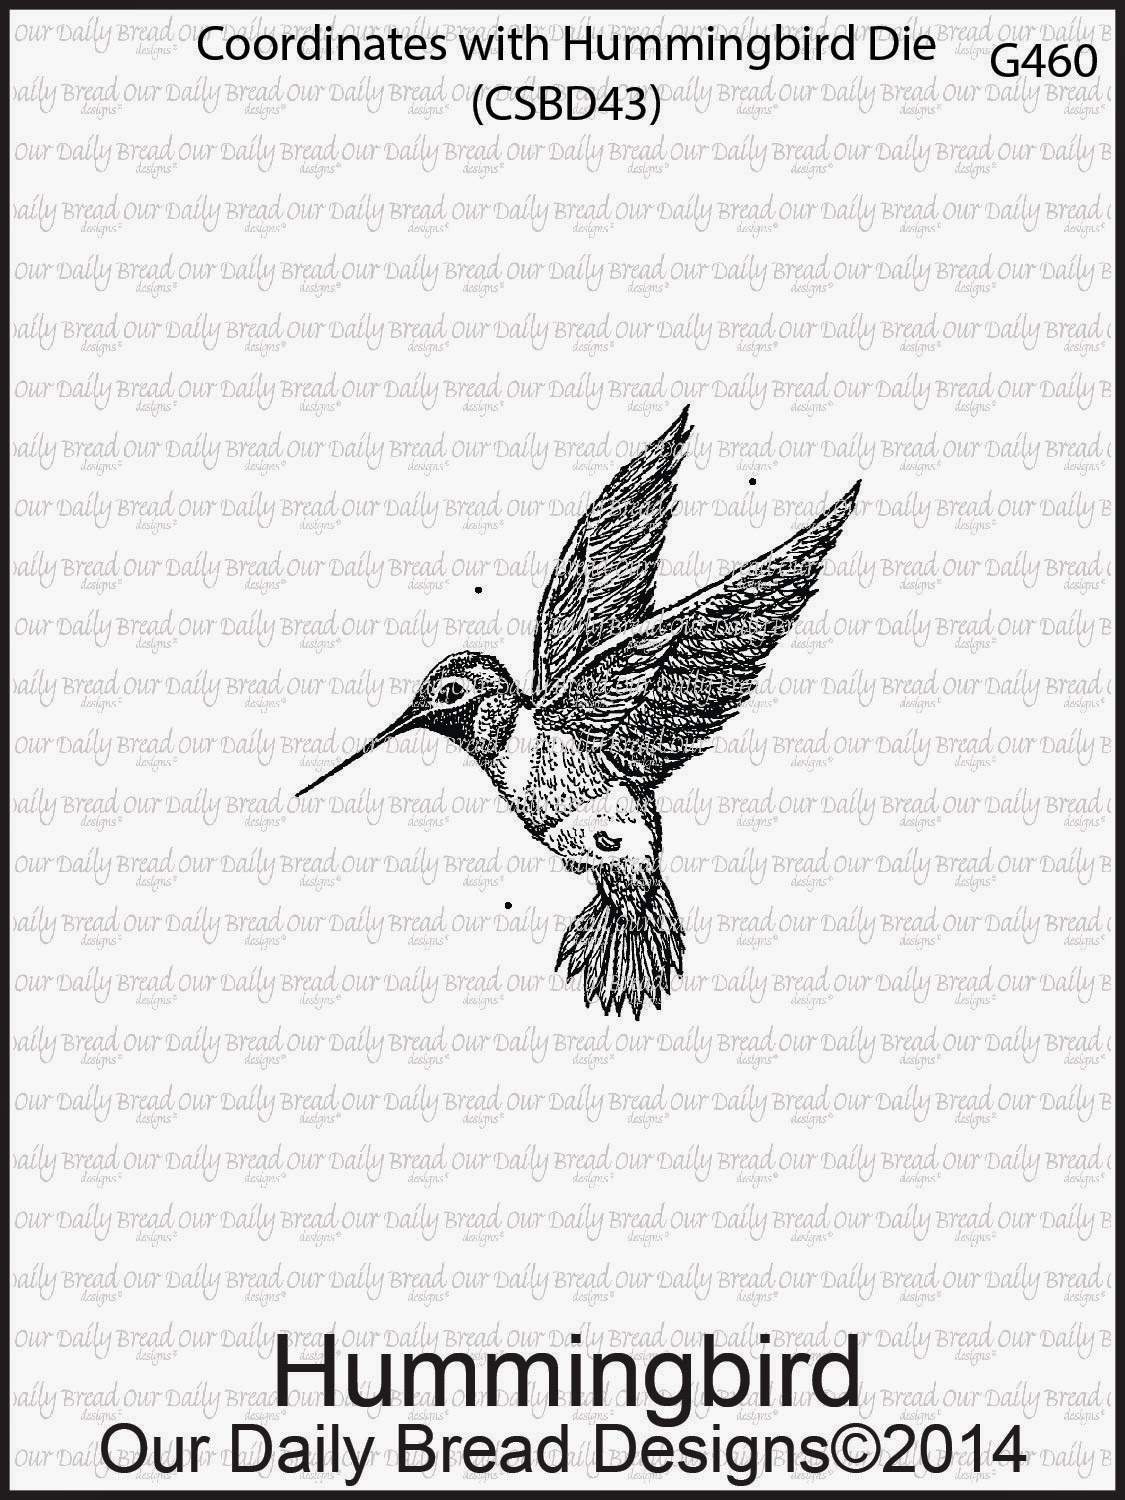 http://www.ourdailybreaddesigns.com/index.php/g460-hummingbird.html